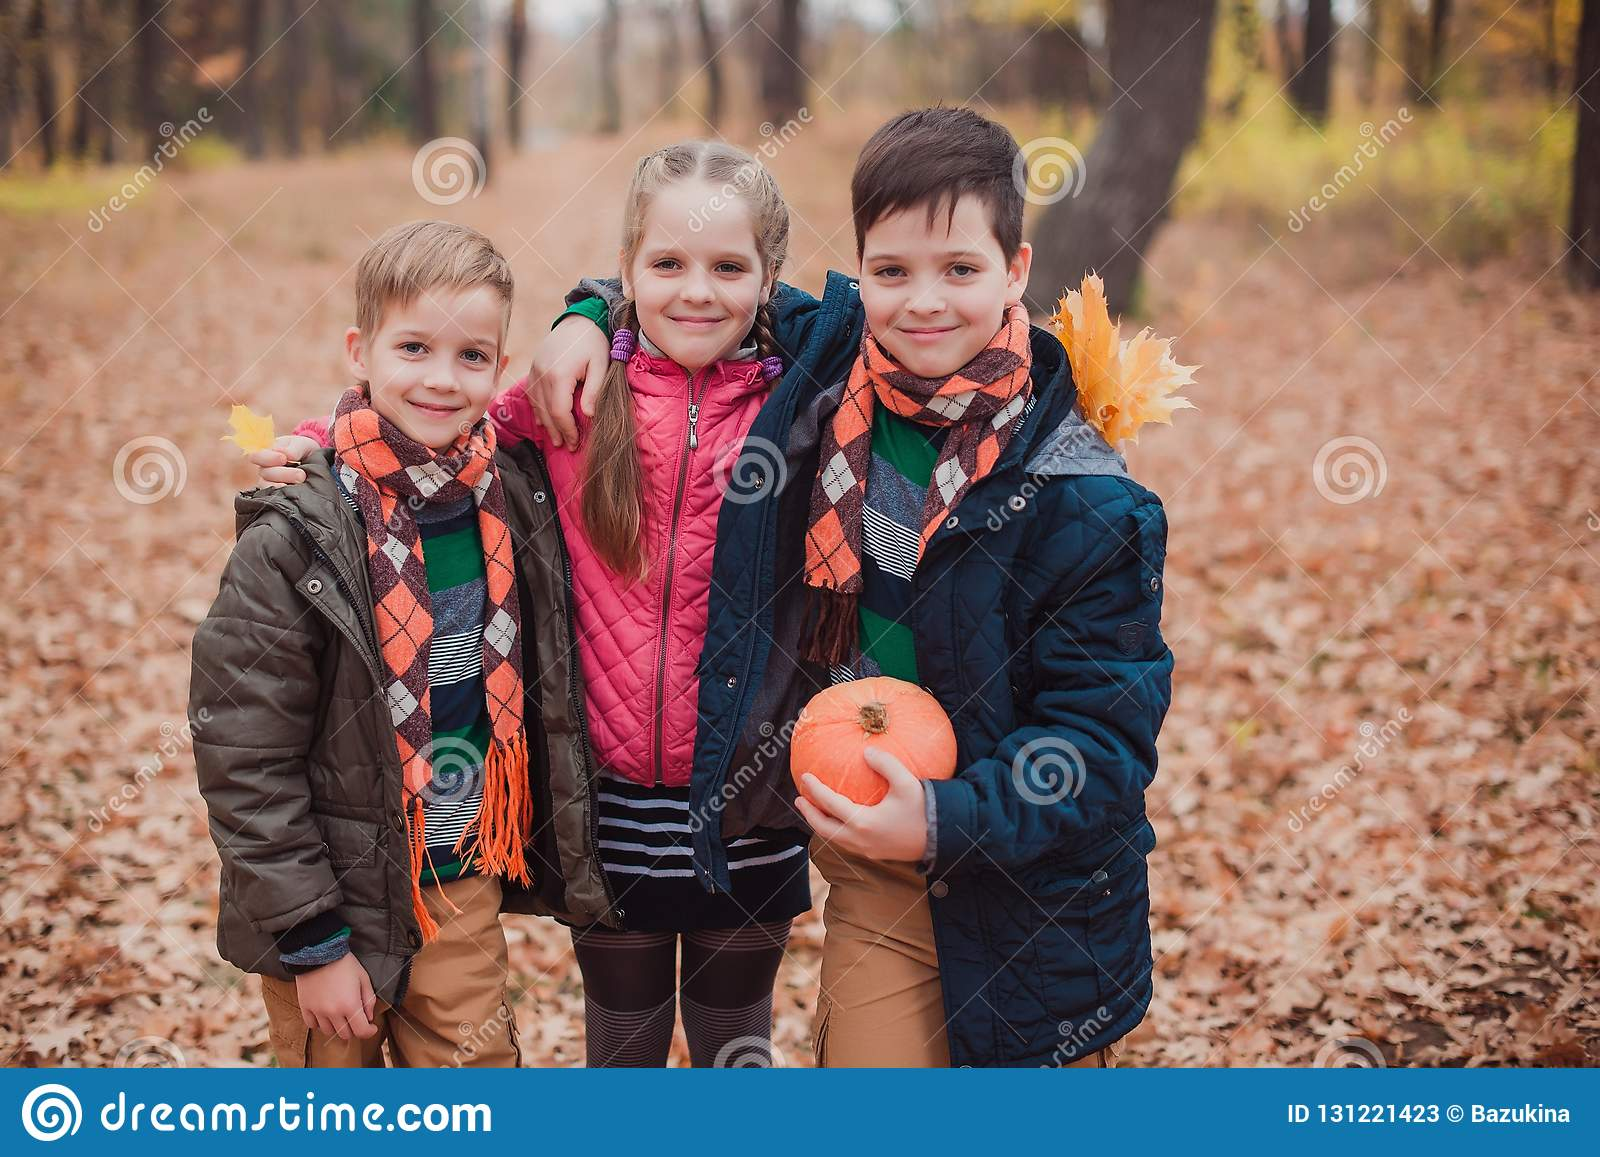 Two brothers and one sister, three children in the forest.